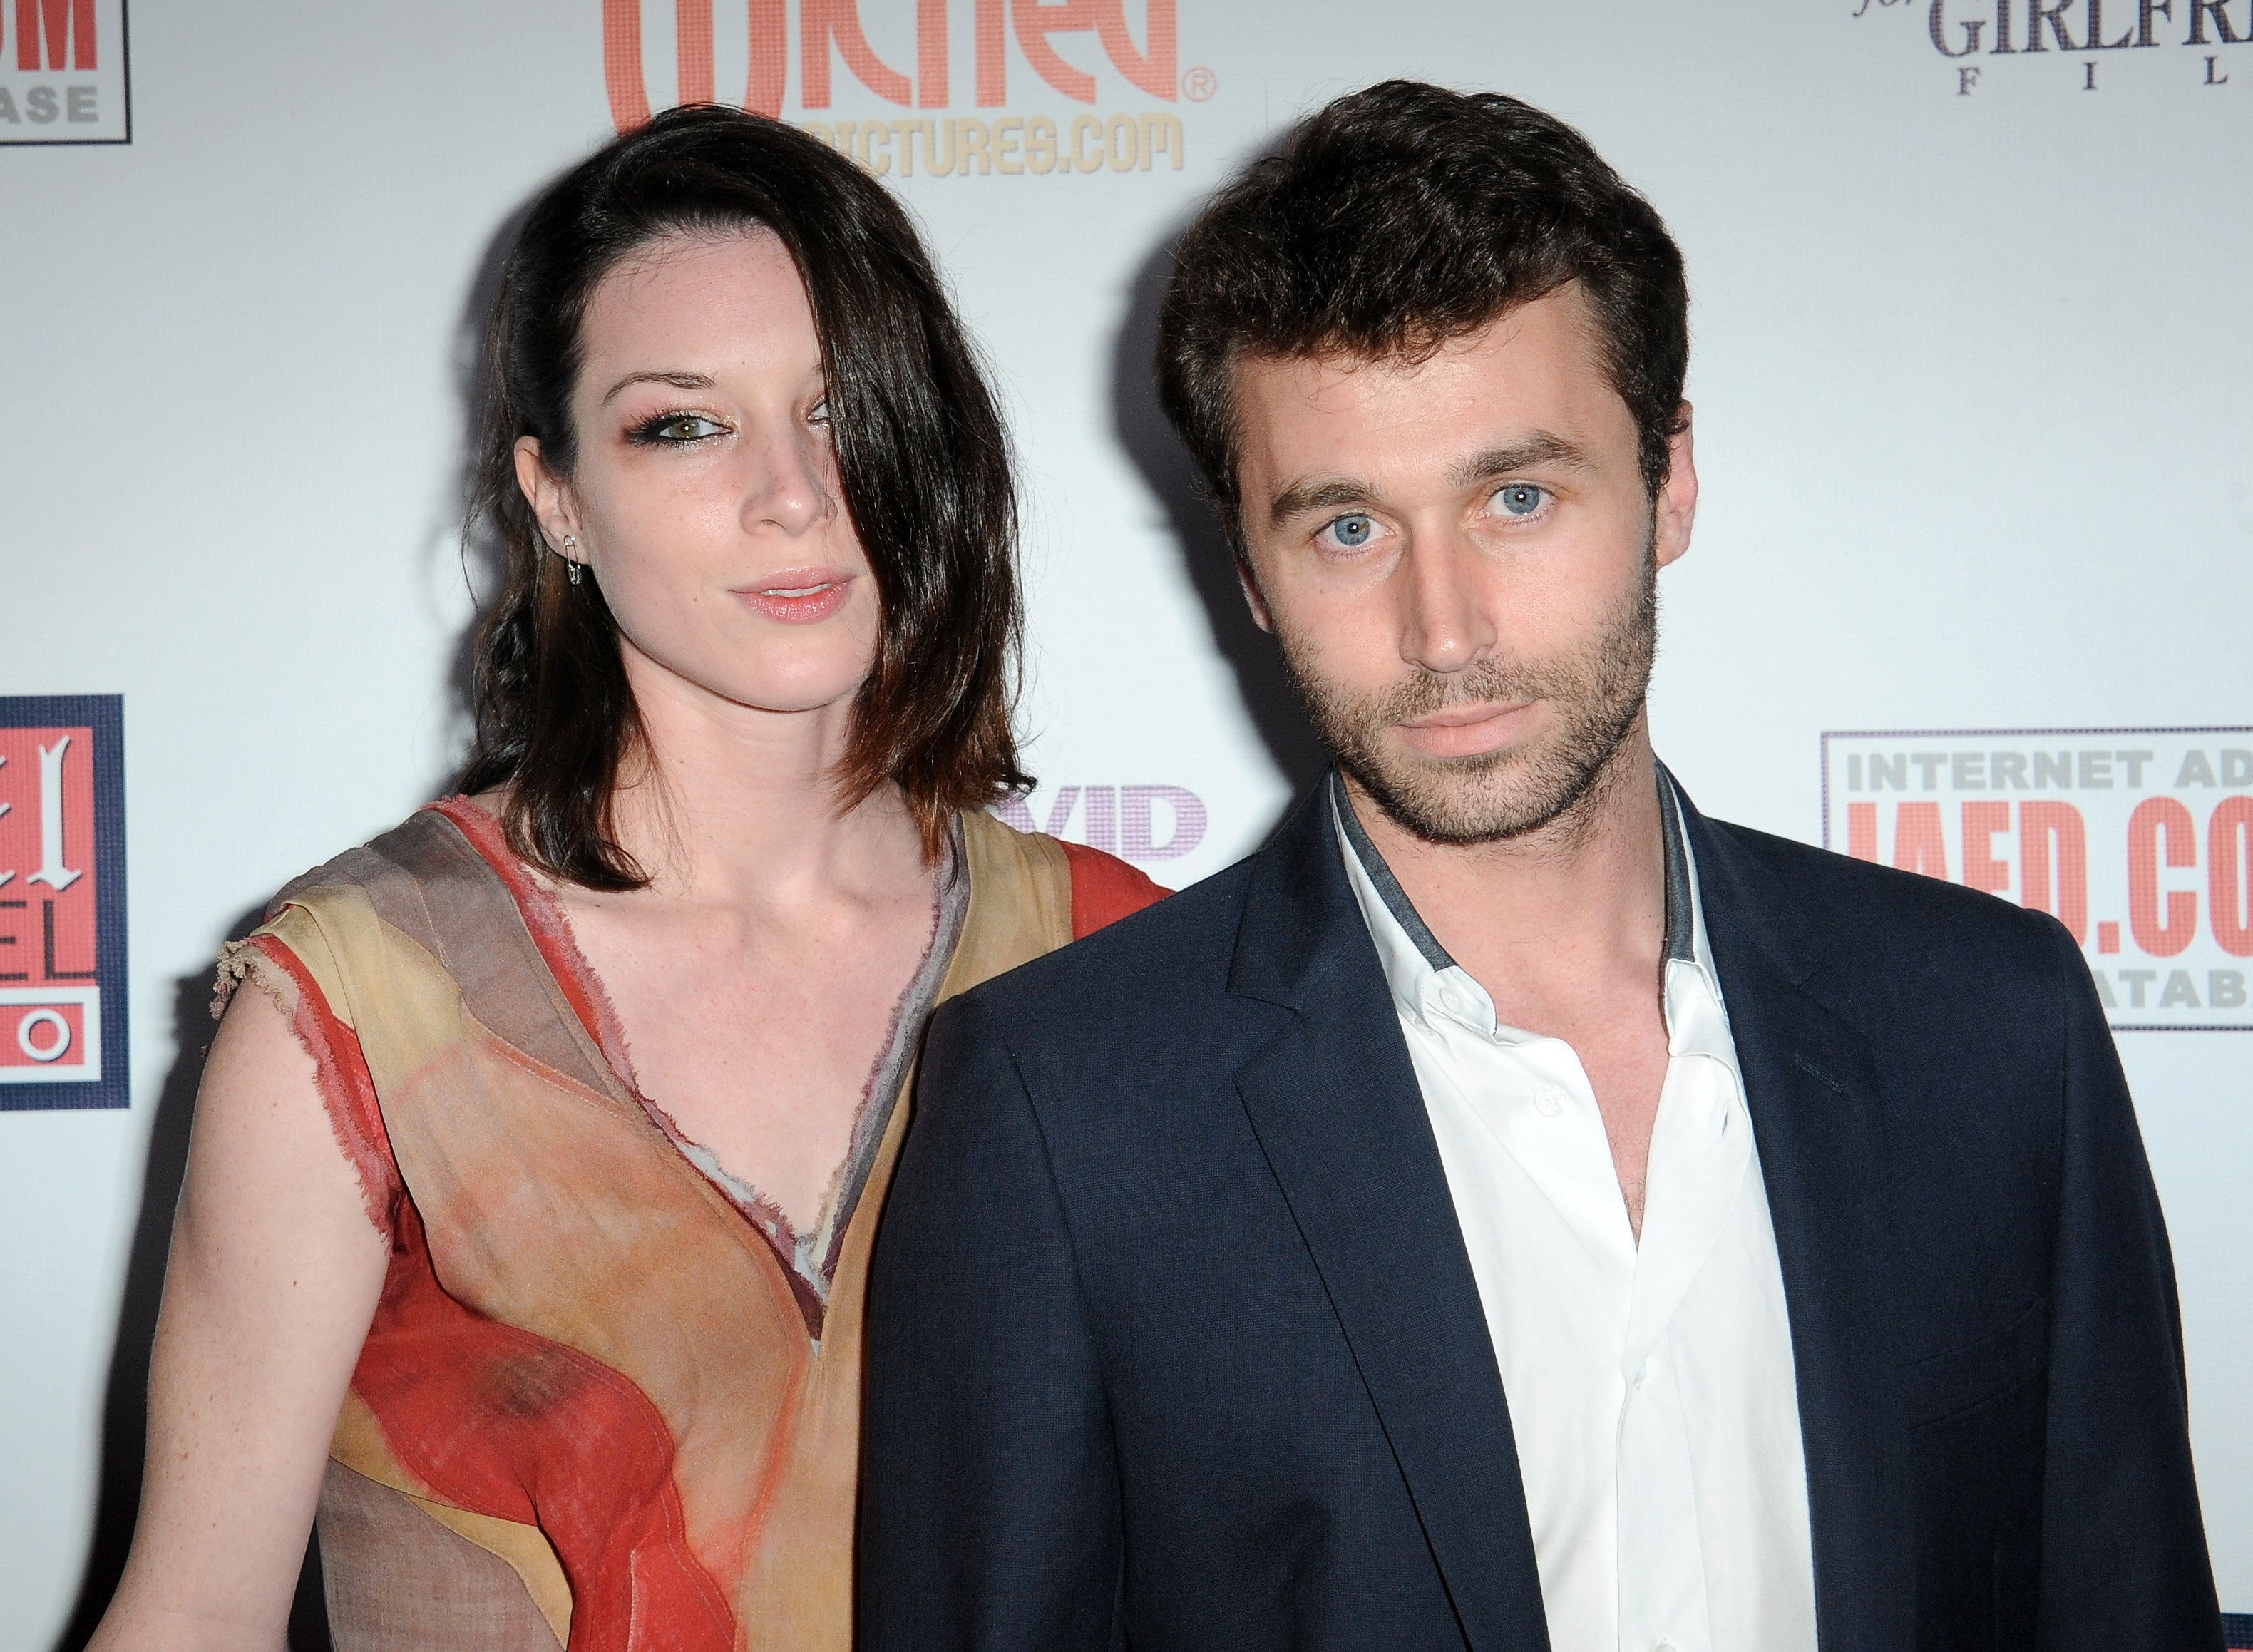 Cannot be! James deen and stoya remarkable